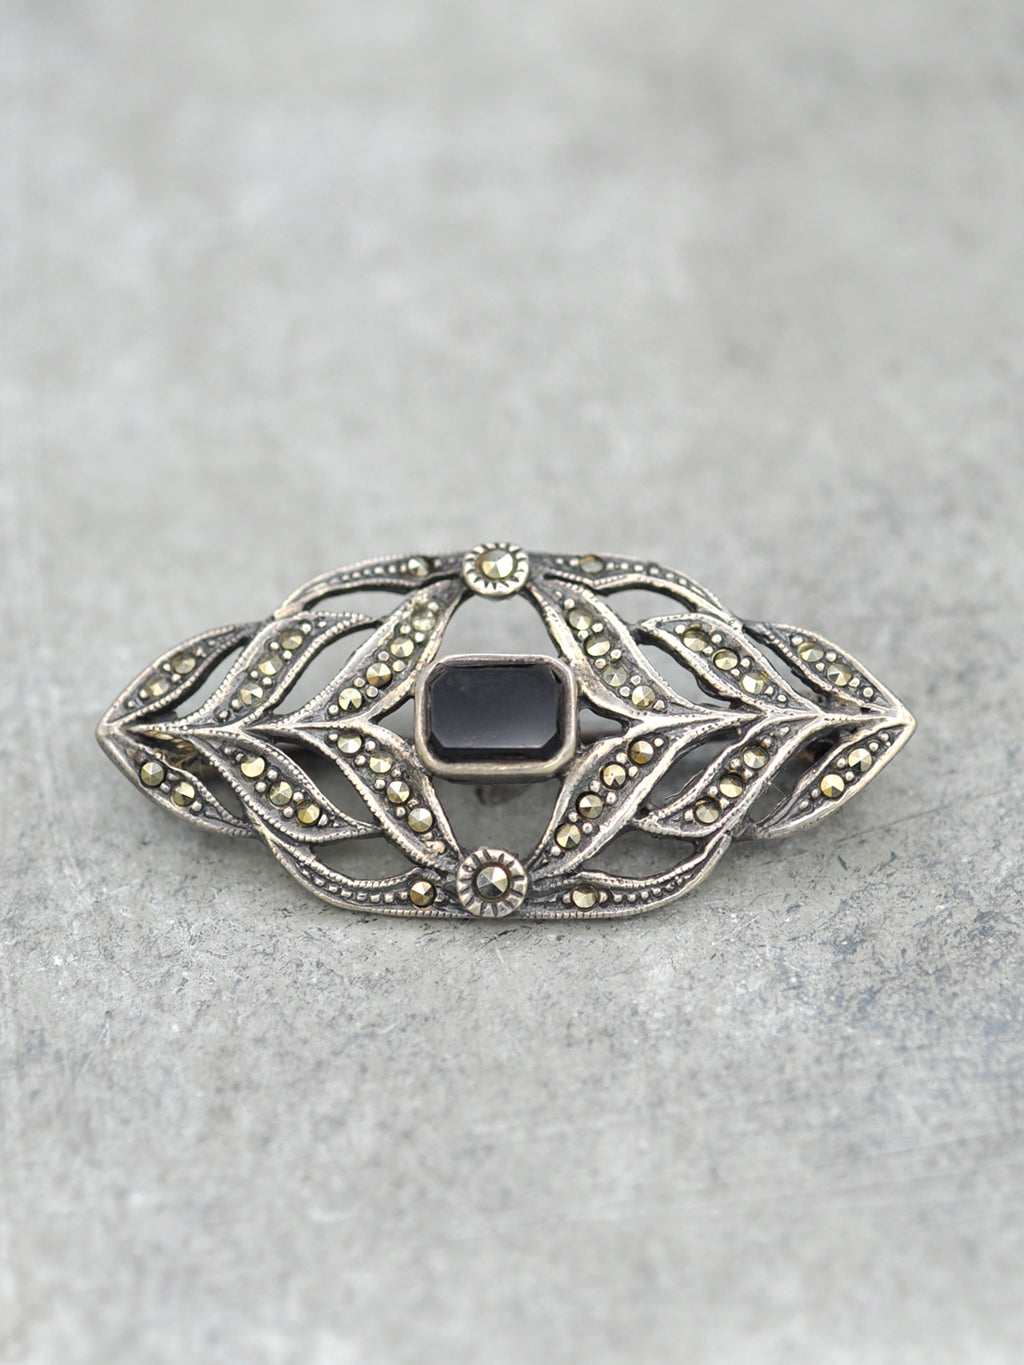 Antique Black Onyx + Marcasite Brooch